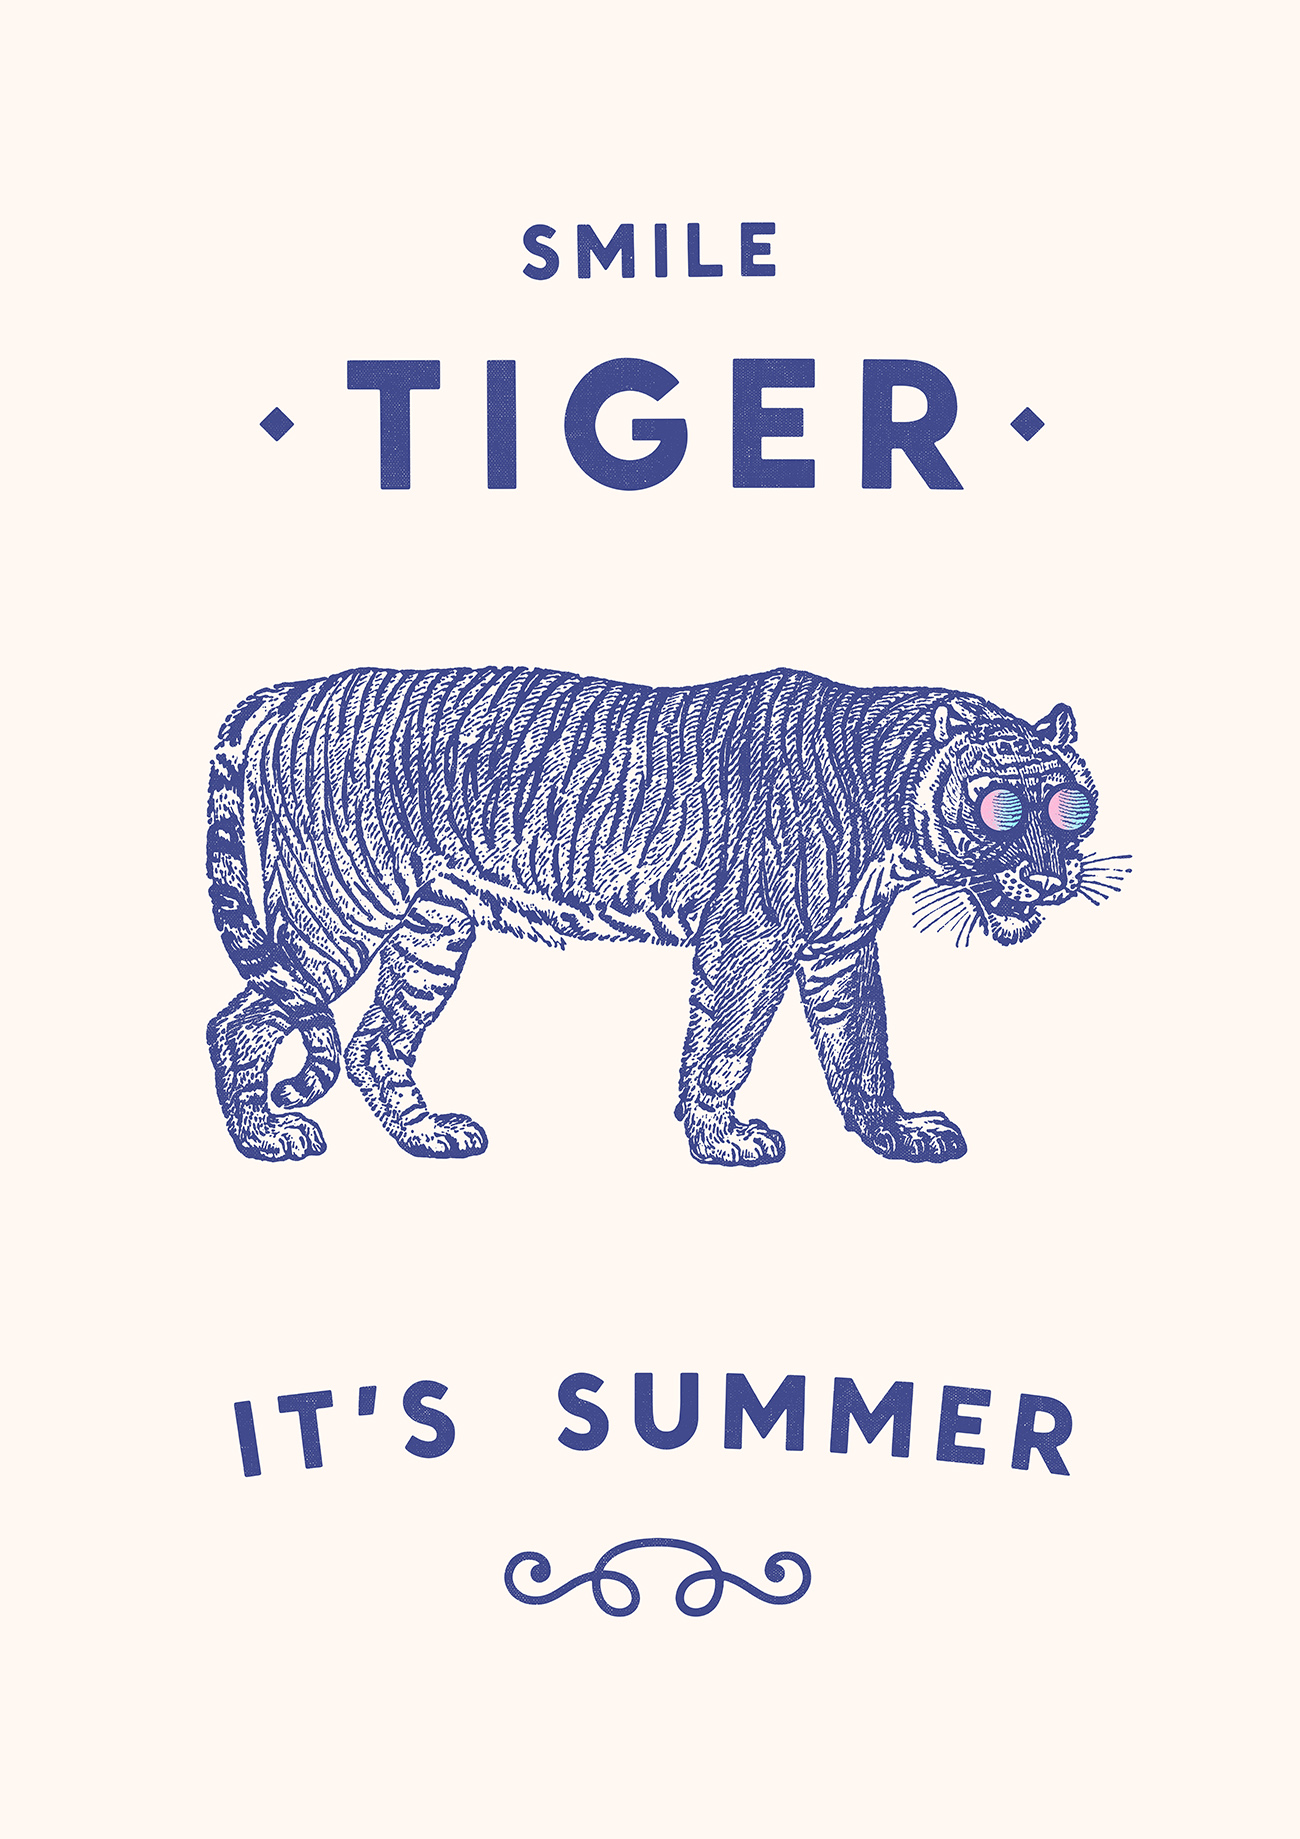 <h20>Smile Tiger it's Summer</h20><br><br><br>